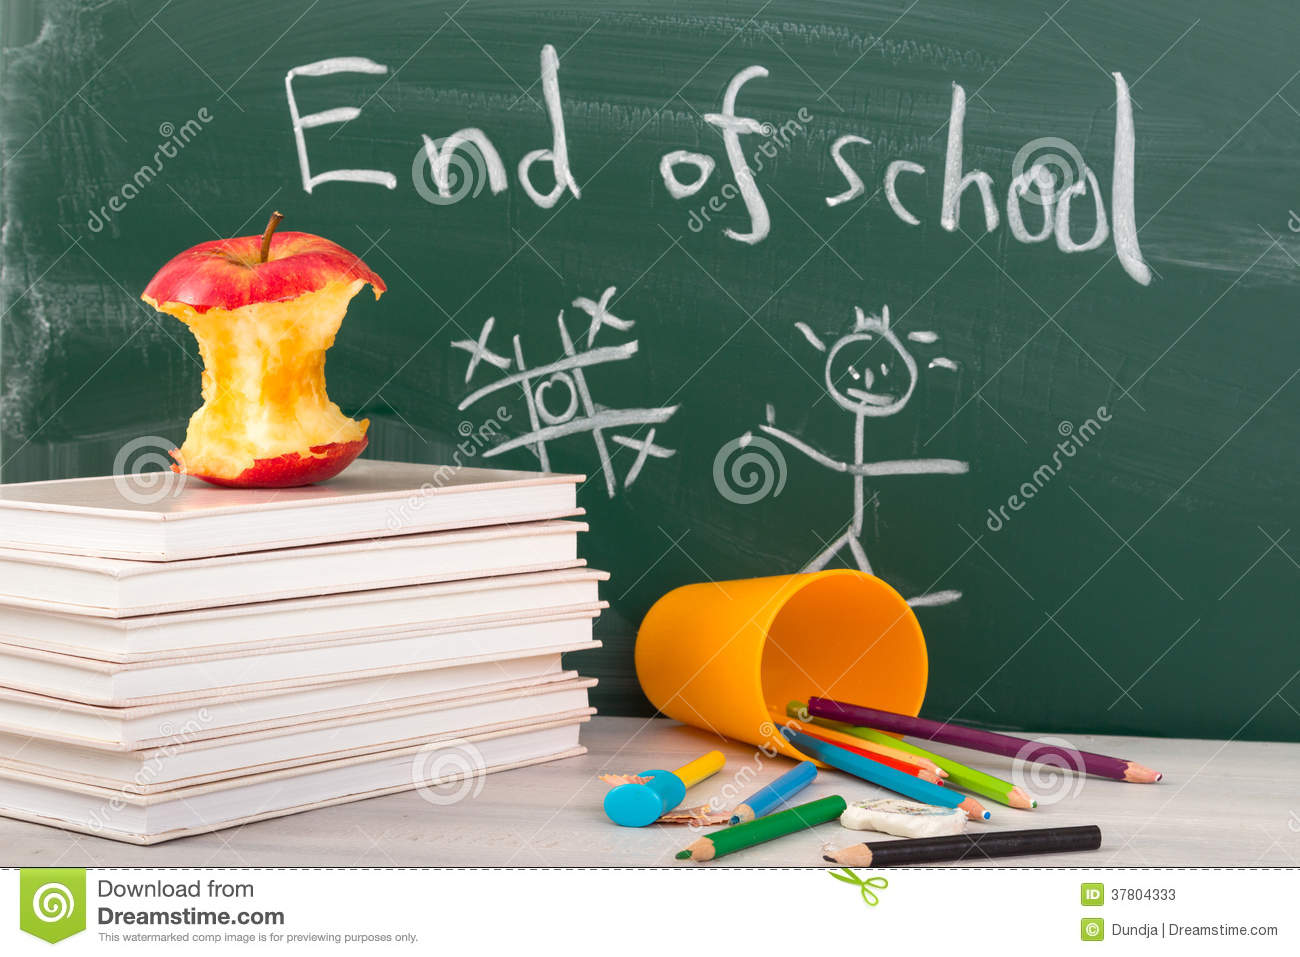 break time in school Essays - largest database of quality sample essays and research papers on break time in school.